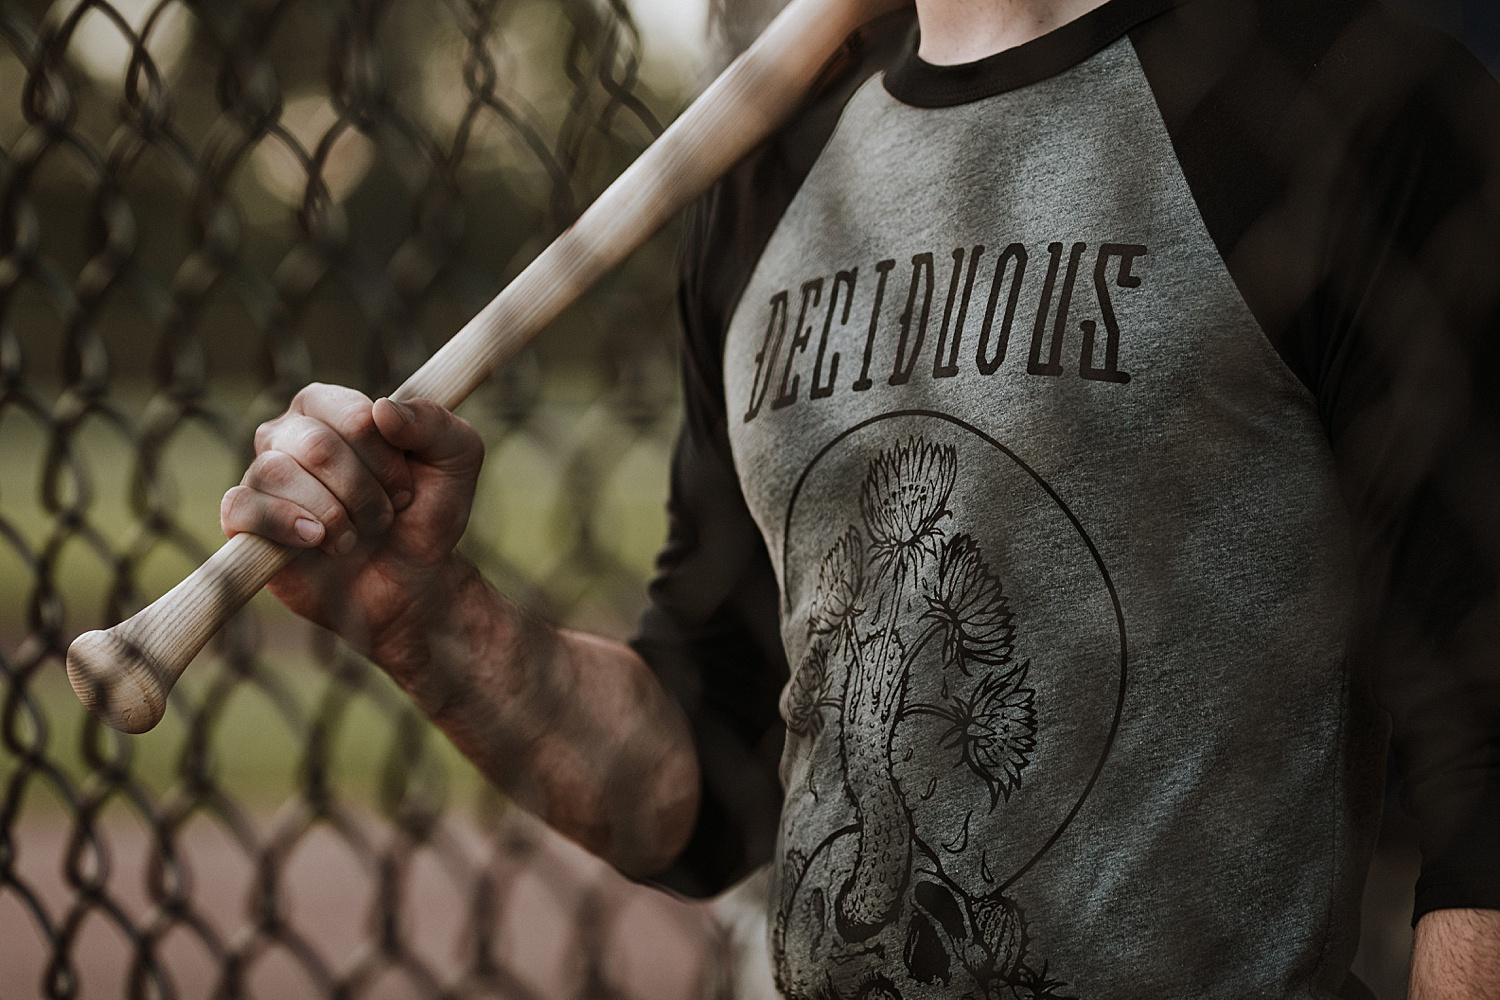 Deciduous Life baseball lifestyle commercial photography shoot Penn State Berks